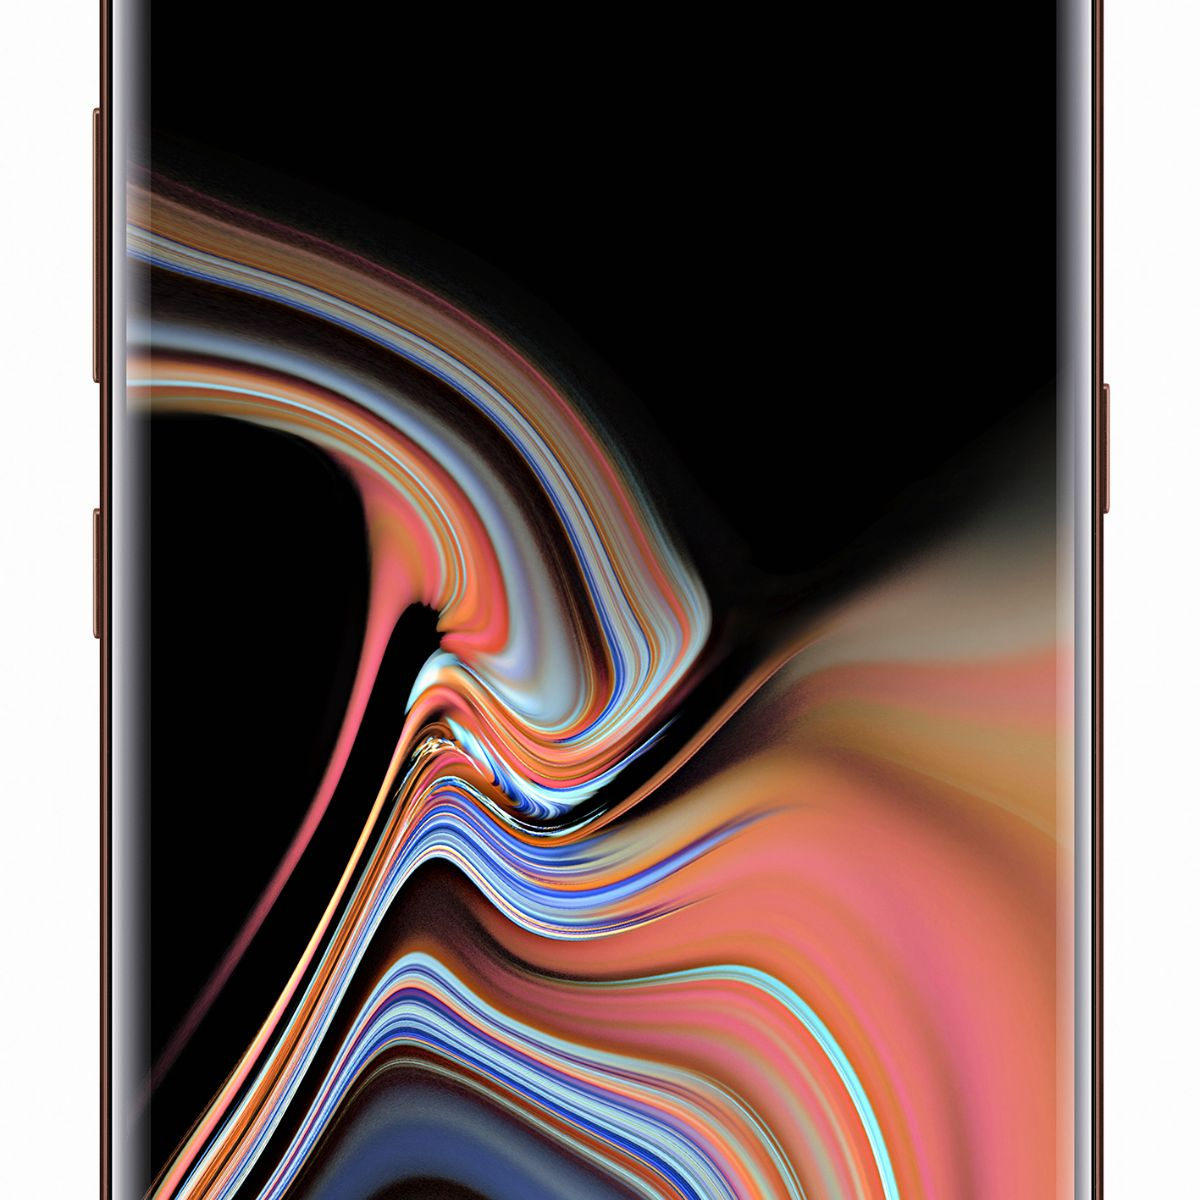 Free download You can grab all 12 of the Note 9 wallpapers